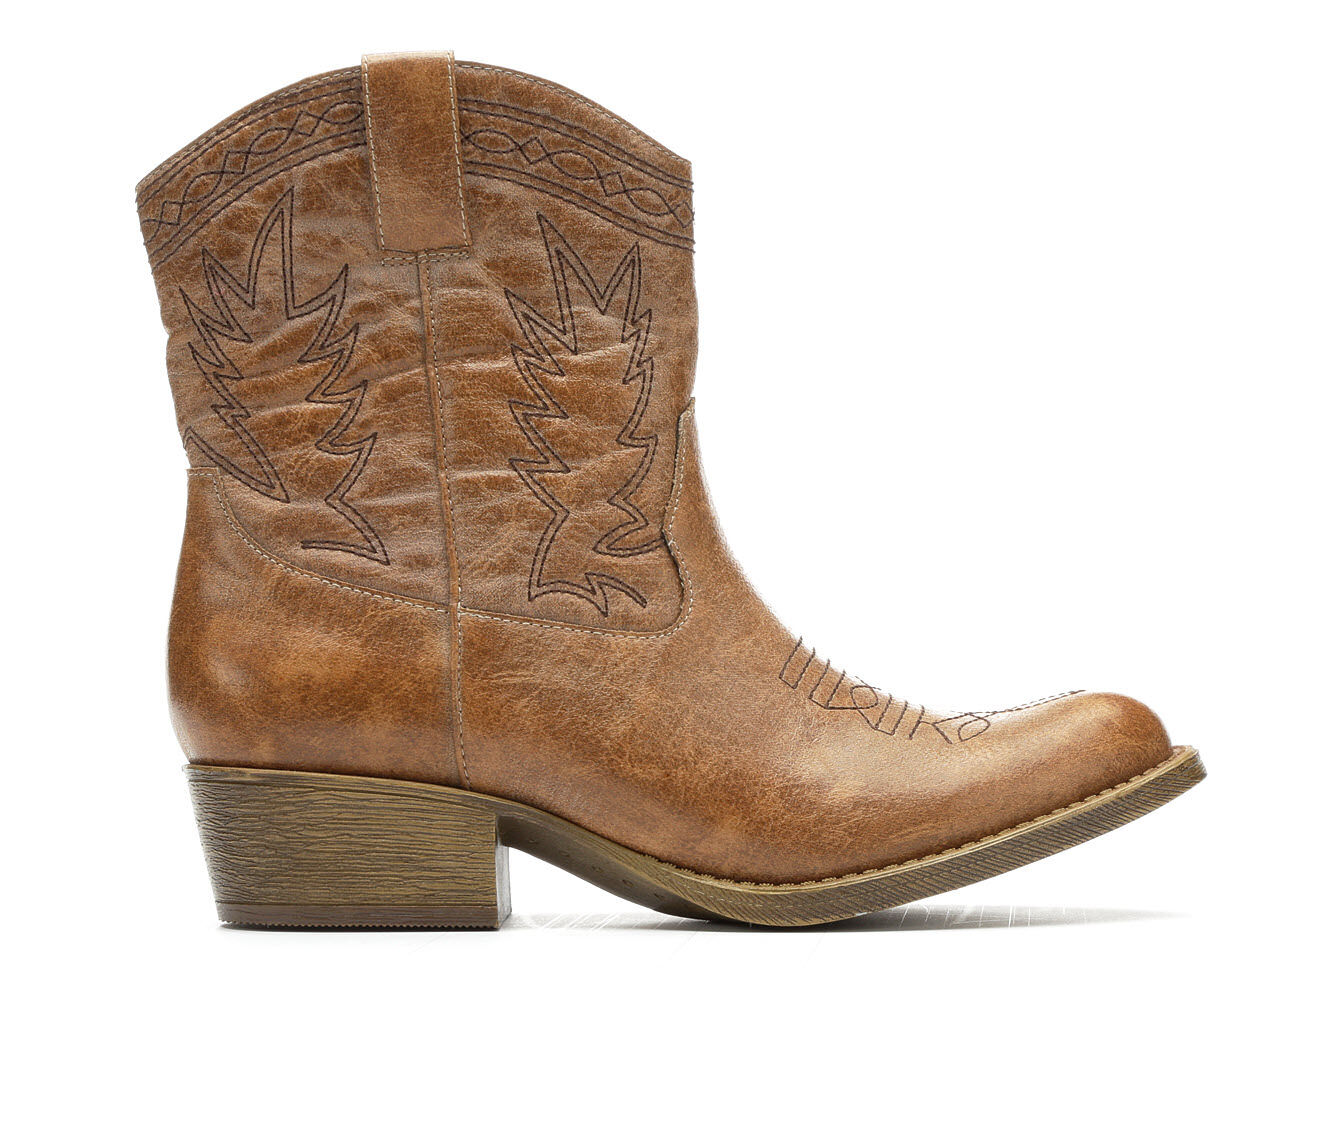 big sale online Women's Coconuts Shane Cowboy Boots online store cheap fashionable free shipping real 7JvS8dv